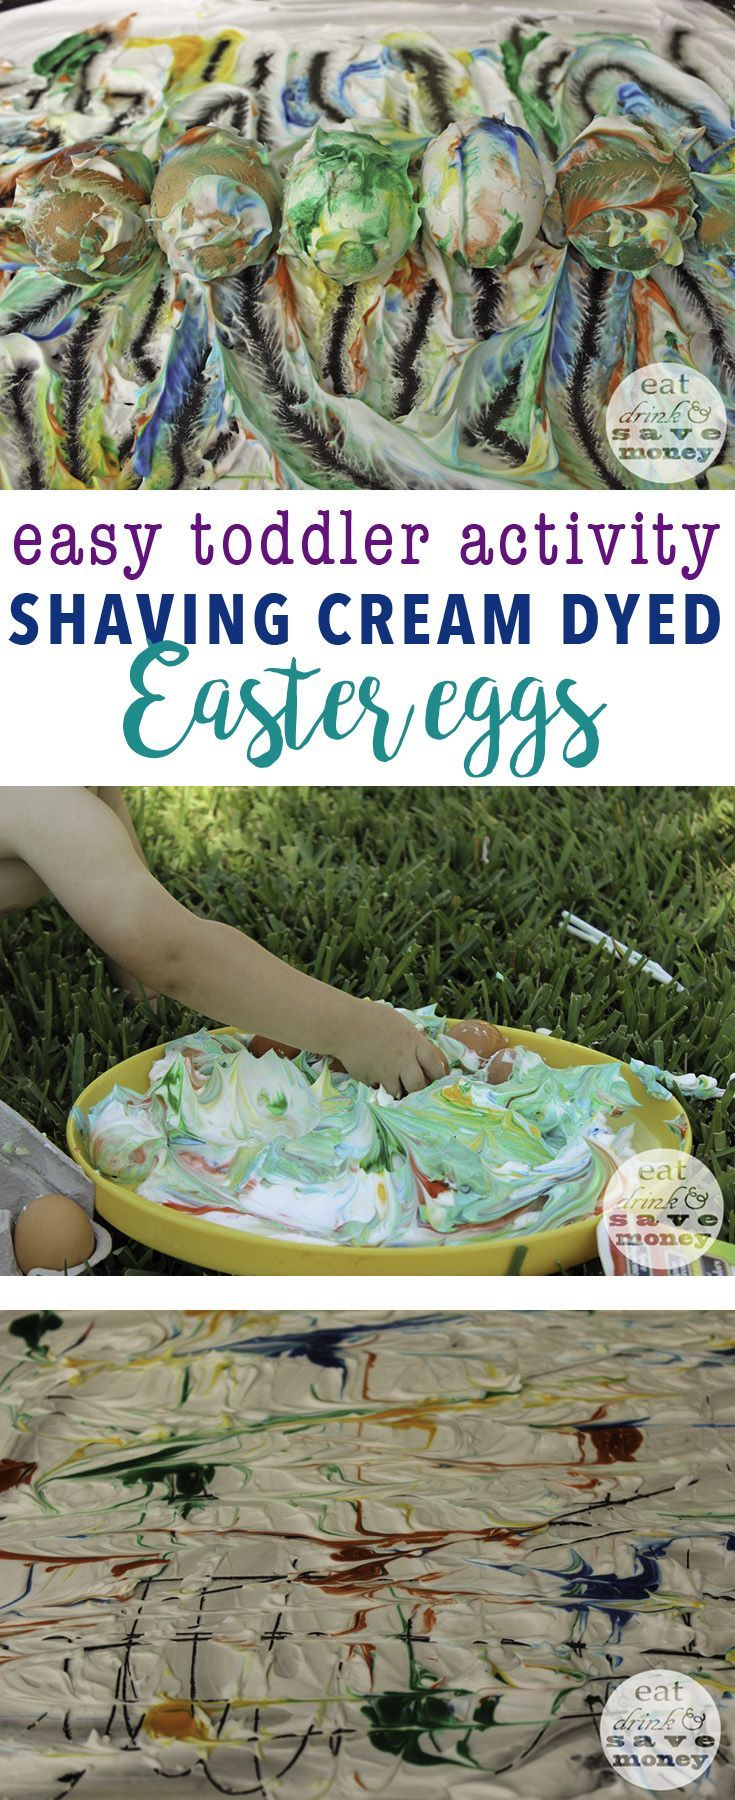 Easy toddler activity- shaving cream dyed Easter eggs are super fun and easy to do with kids and babies   Shaving cream dyed Easter eggs http://eatdrinkandsavemoney.com/2015/03/24/shaving-cream-dyed-easter-eggs/